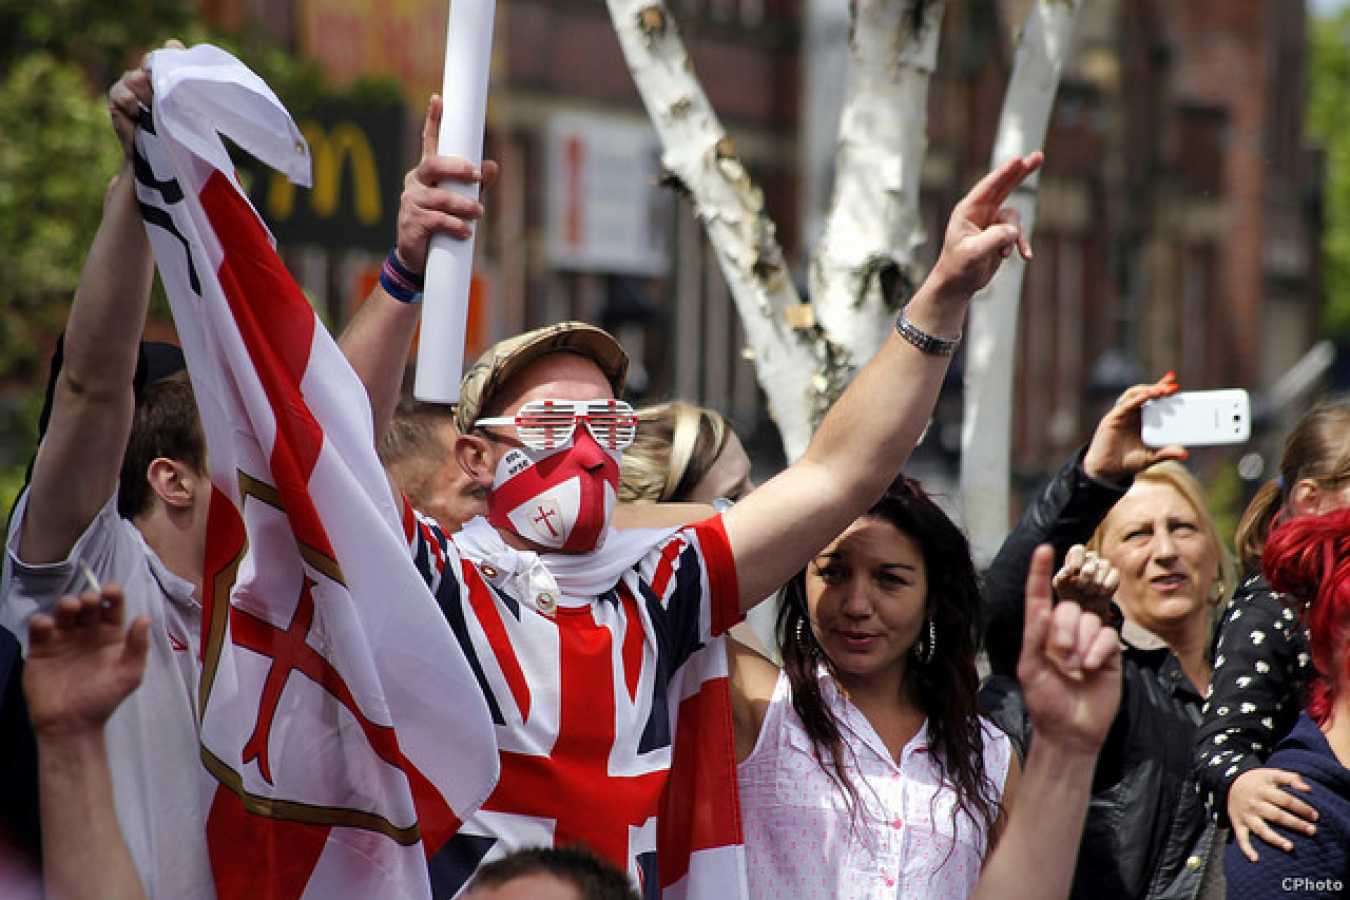 EDL English Defence League and counter protestors UAF United Against Fascism Demo Rotherham May 10th 2014 (25)